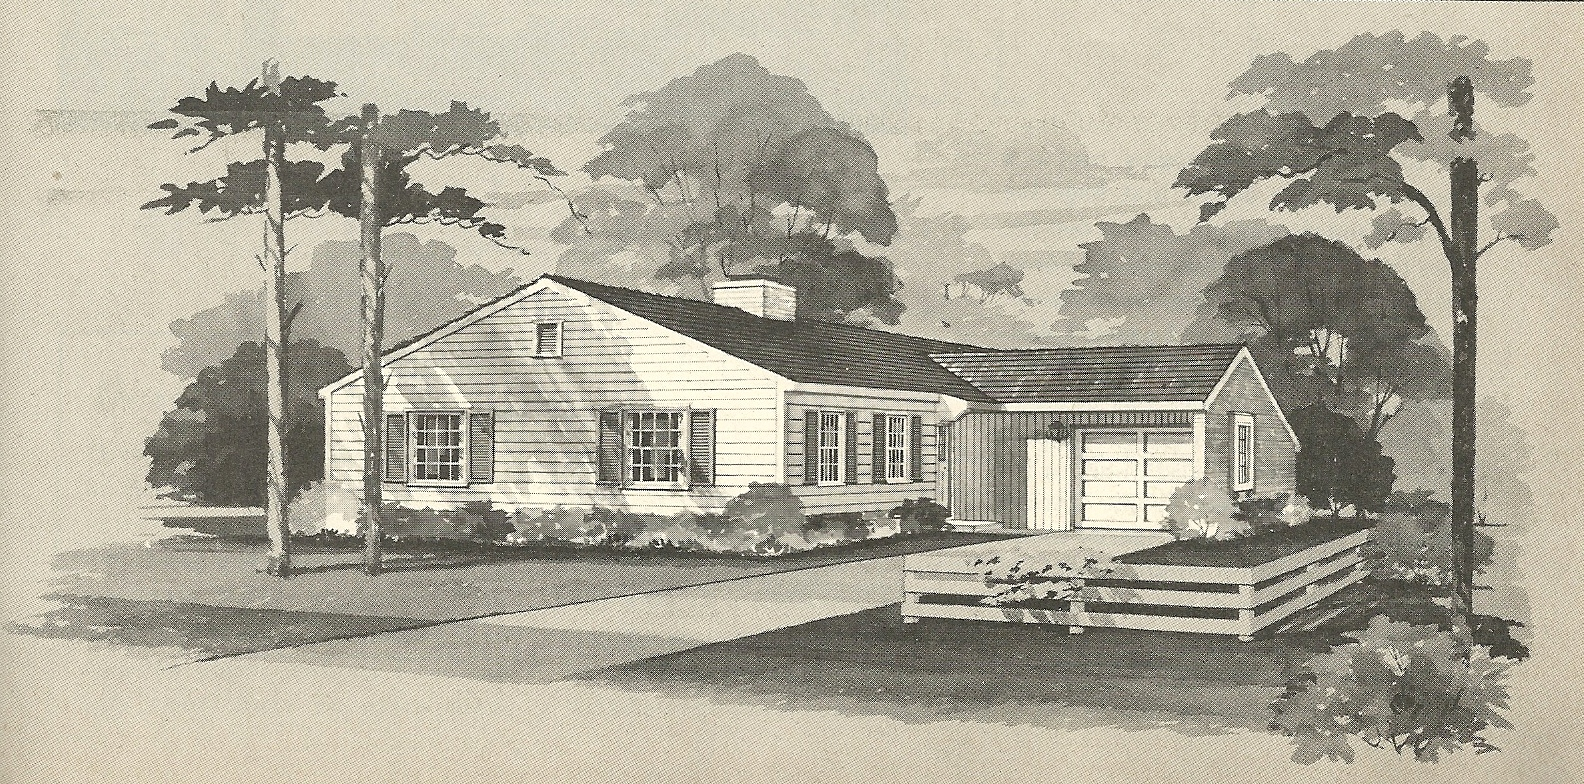 Vintage House Plans 1960s: L-Shaped and Multiple Exteriors ...